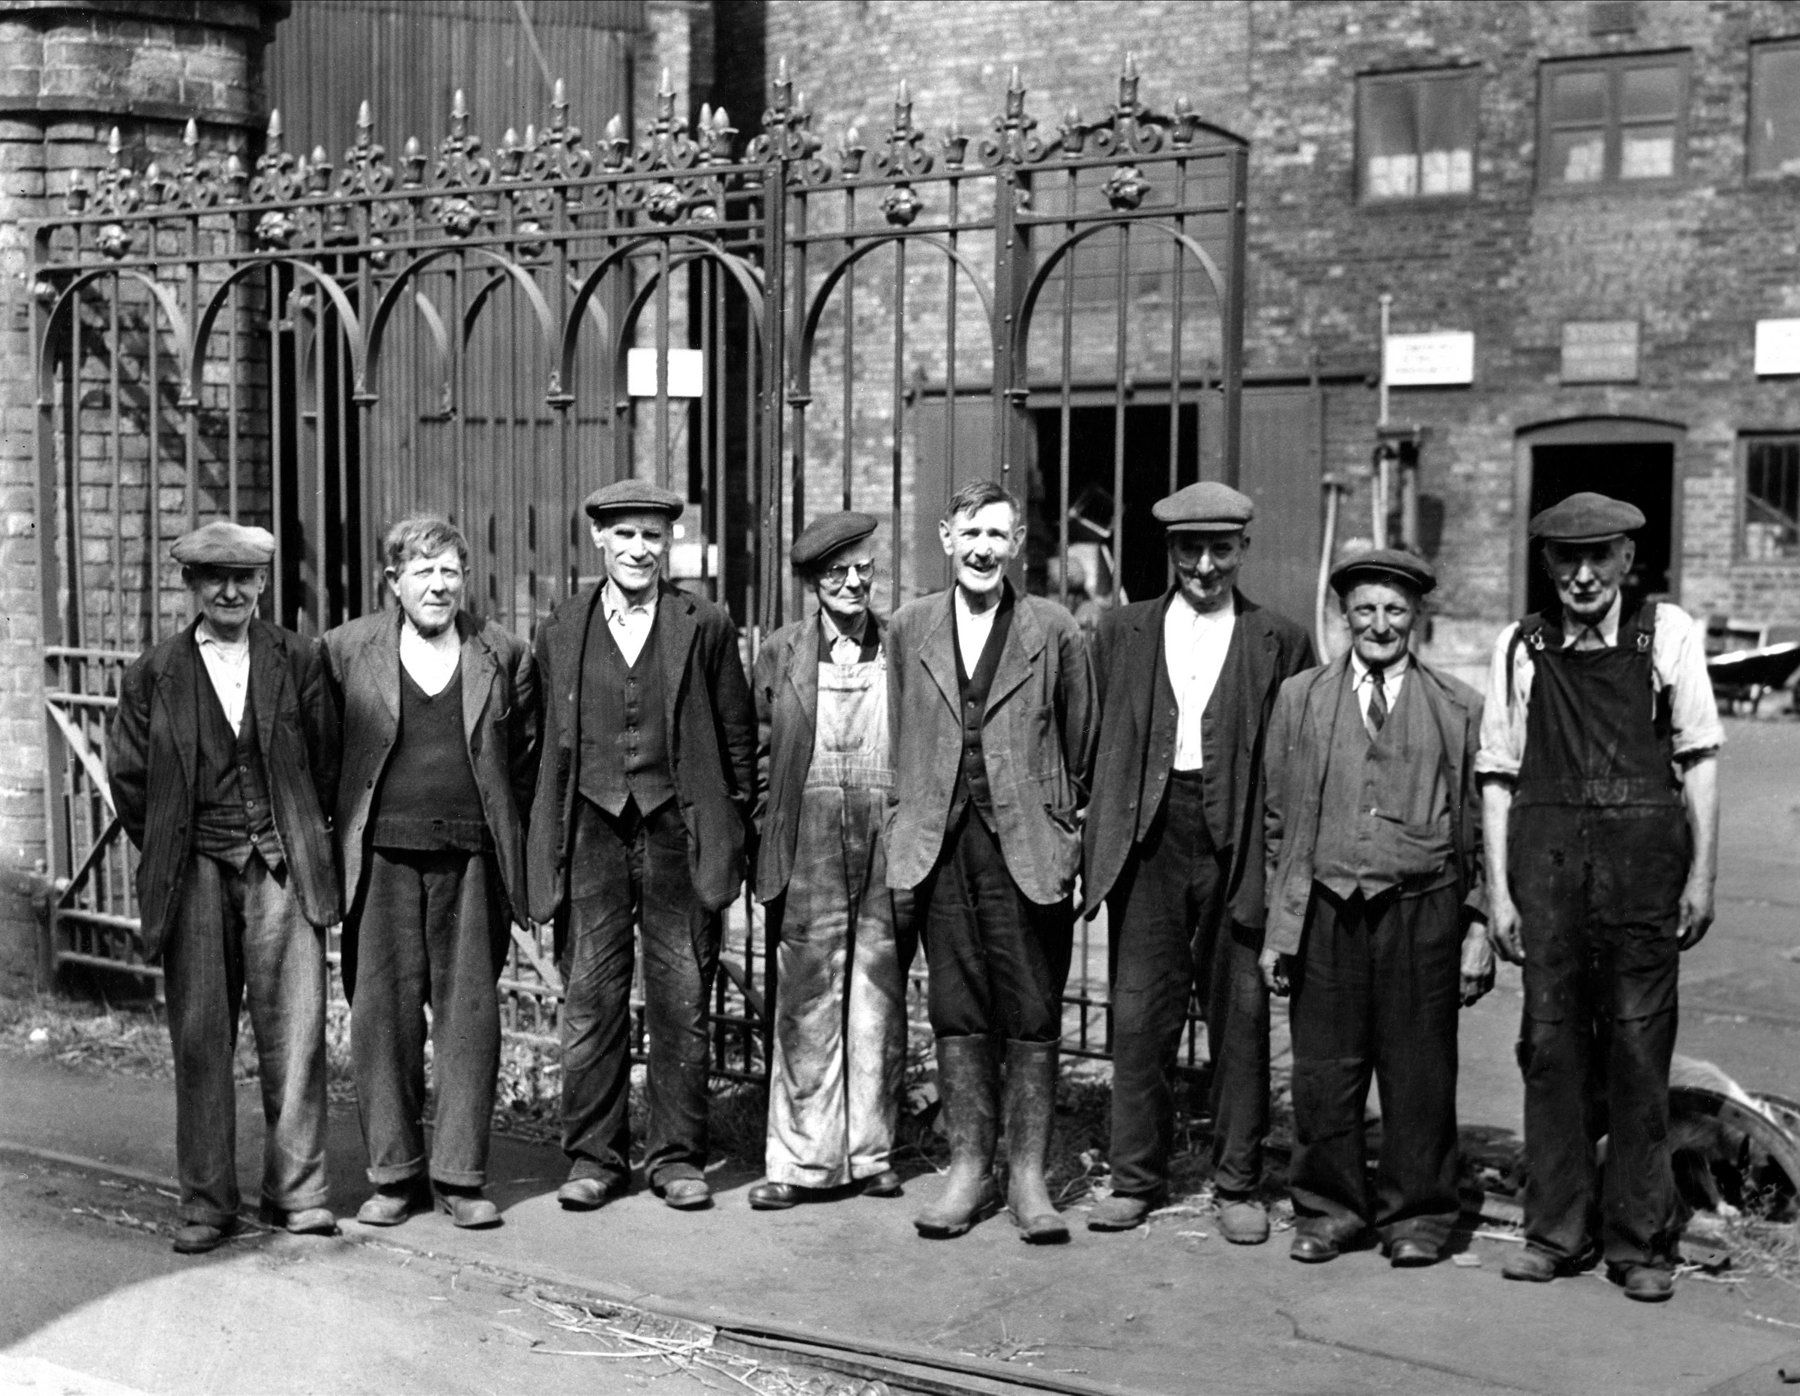 Victorian Factory Workers